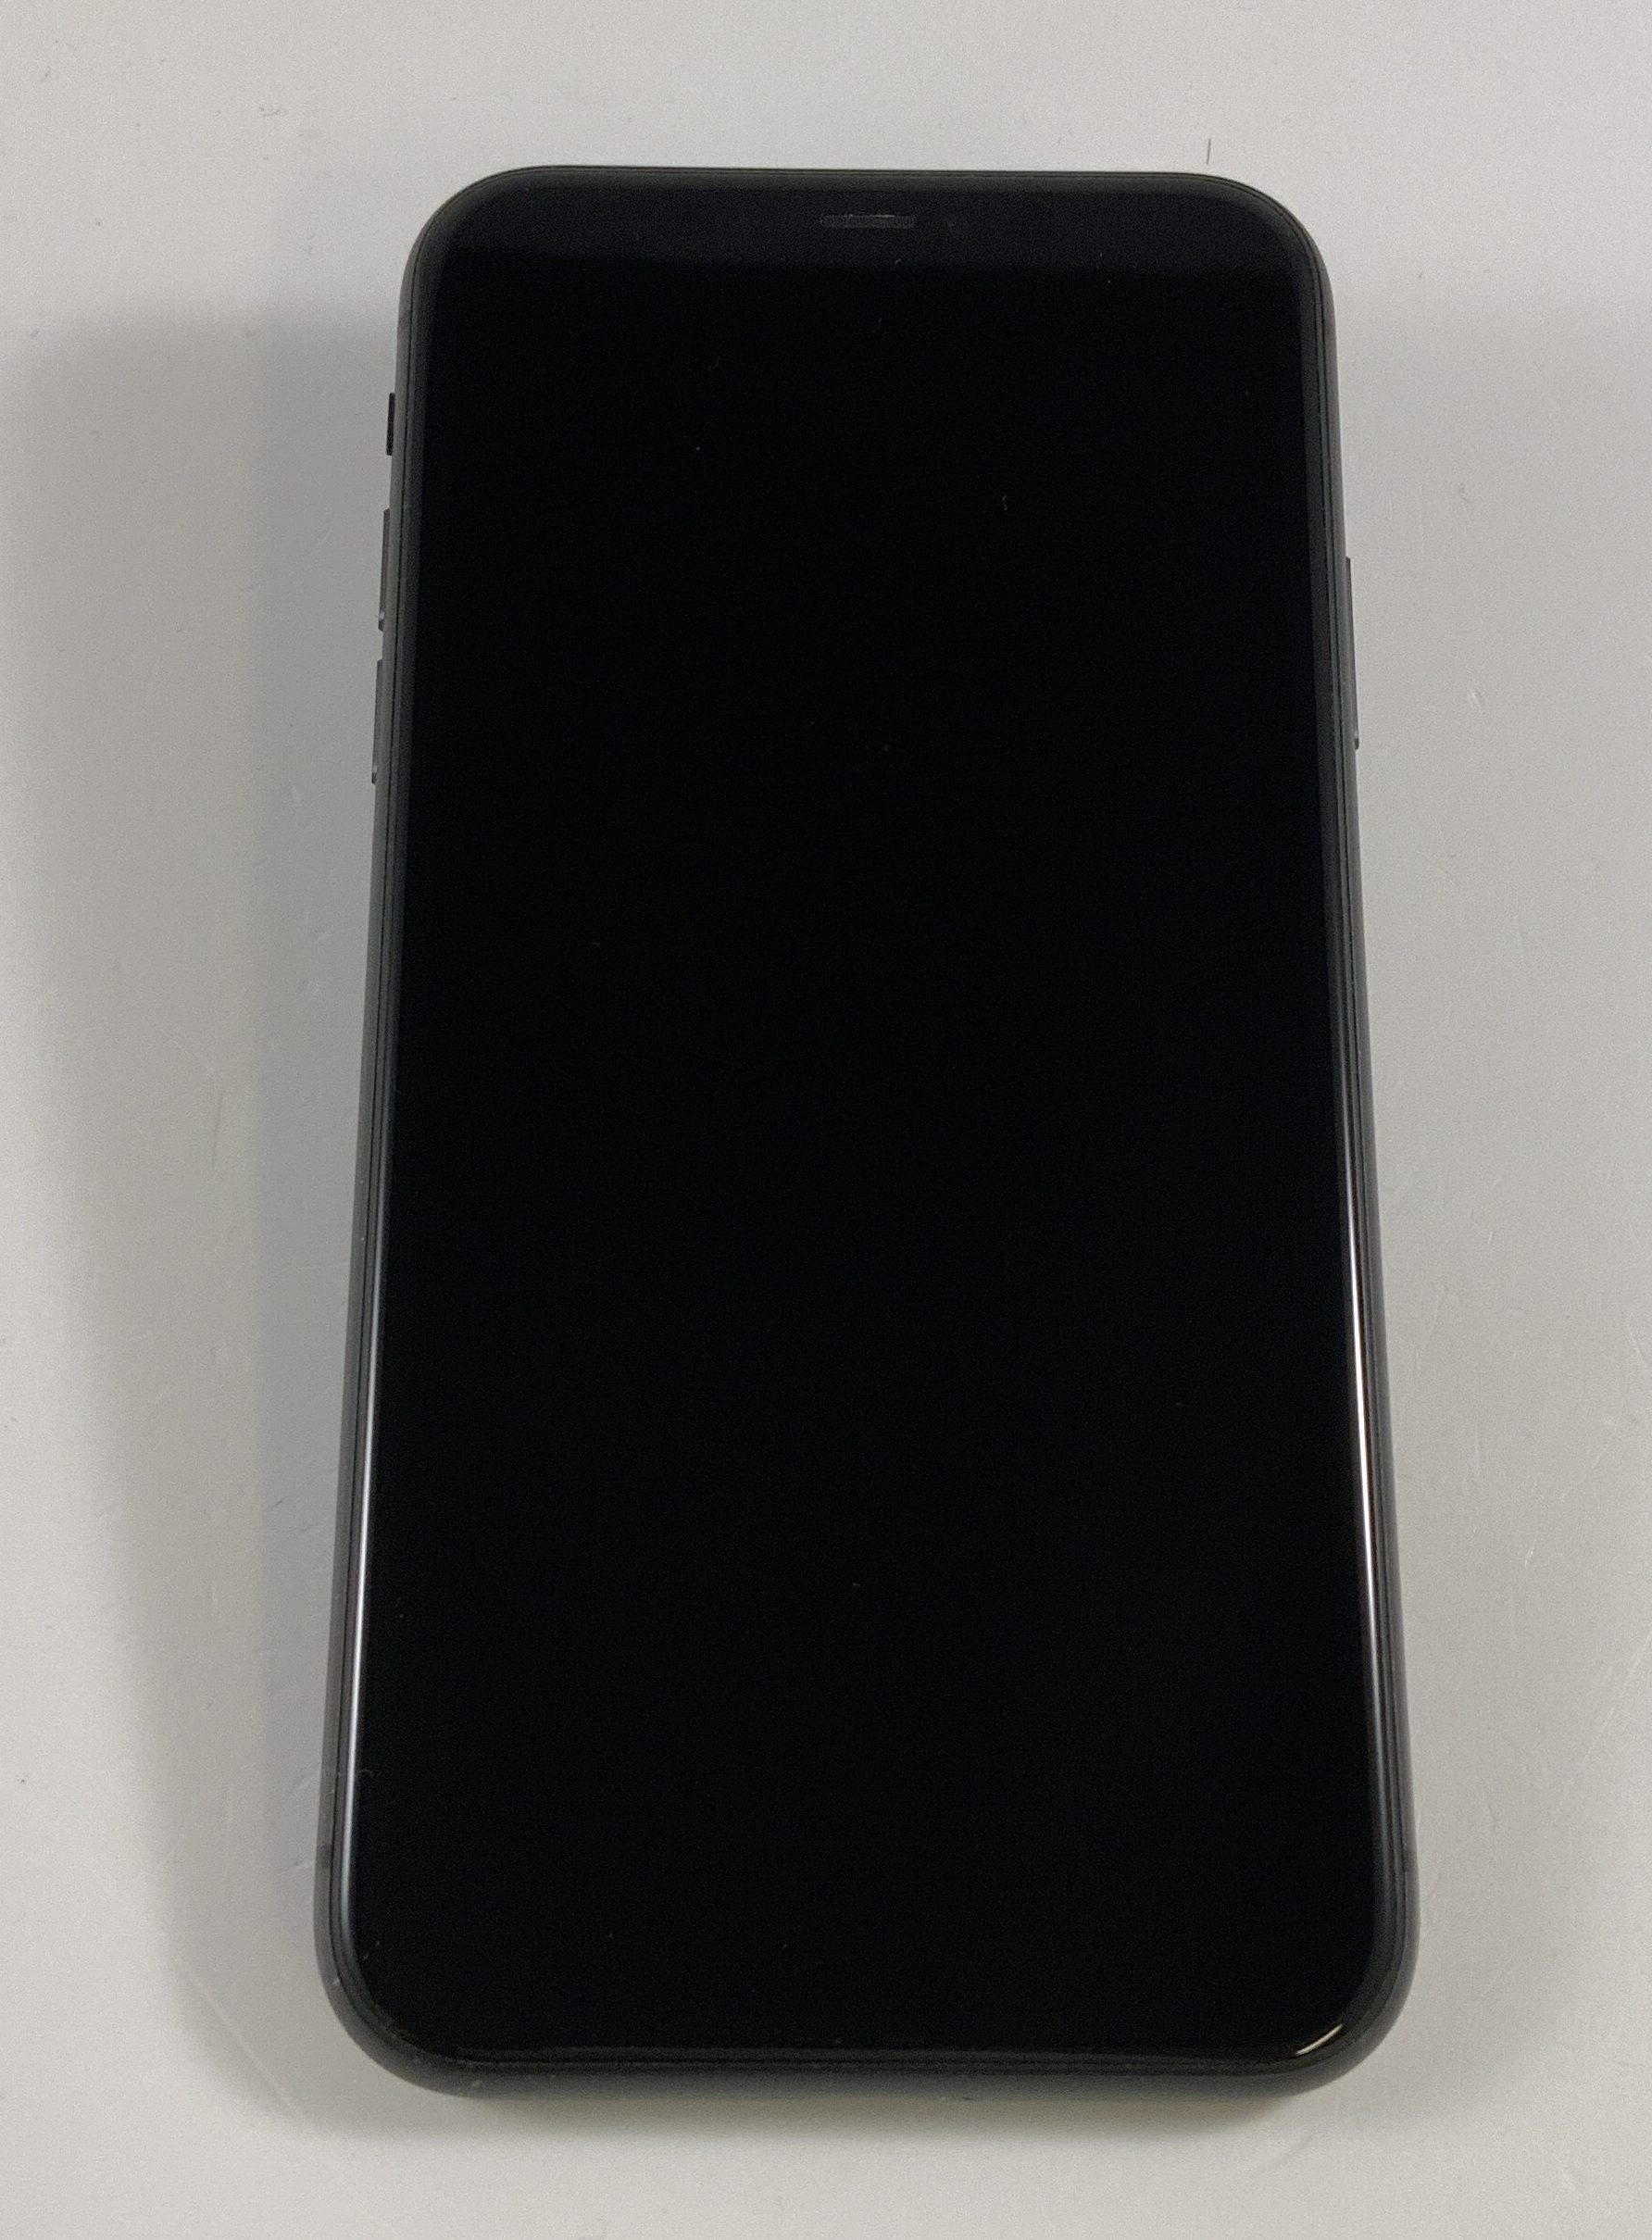 iPhone 11 64GB, 64GB, Black, immagine 1